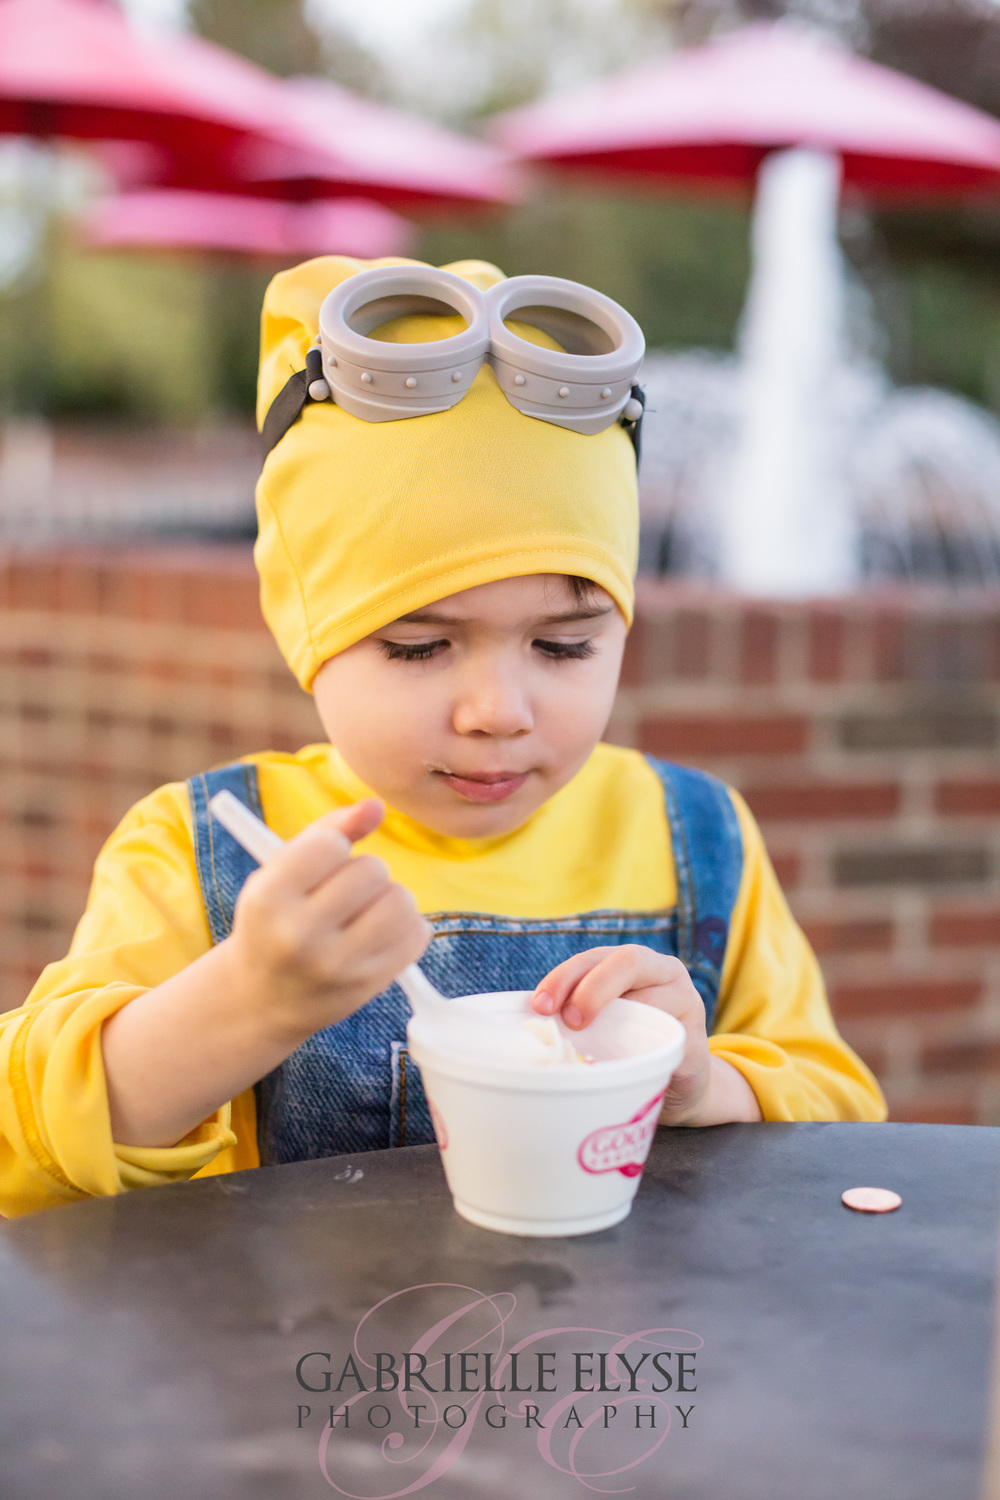 Everyone knows my love of Goodberry's.  This minion does too- picture may look familiar as I had submitted it to Goodberry's for a chance to win a Gift Card for their Halloween giveaway....we won one :)